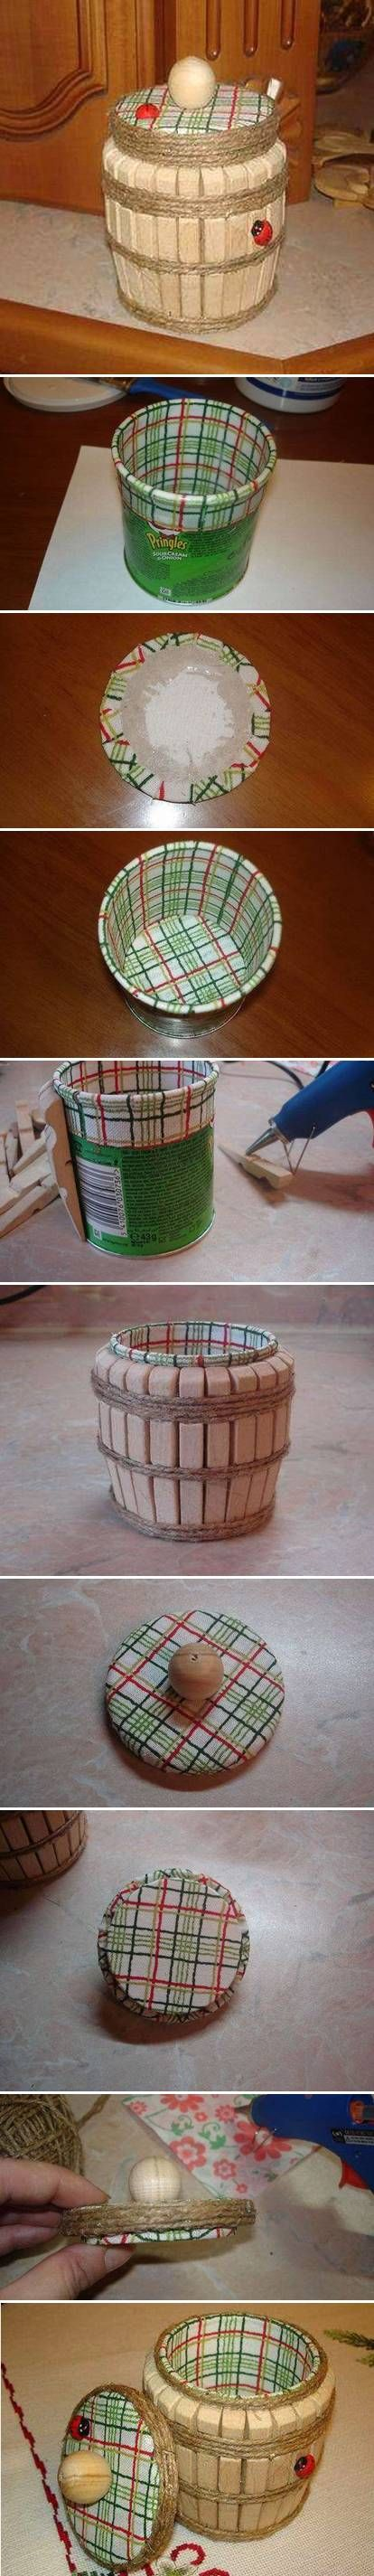 DIY Clothespin Barrel